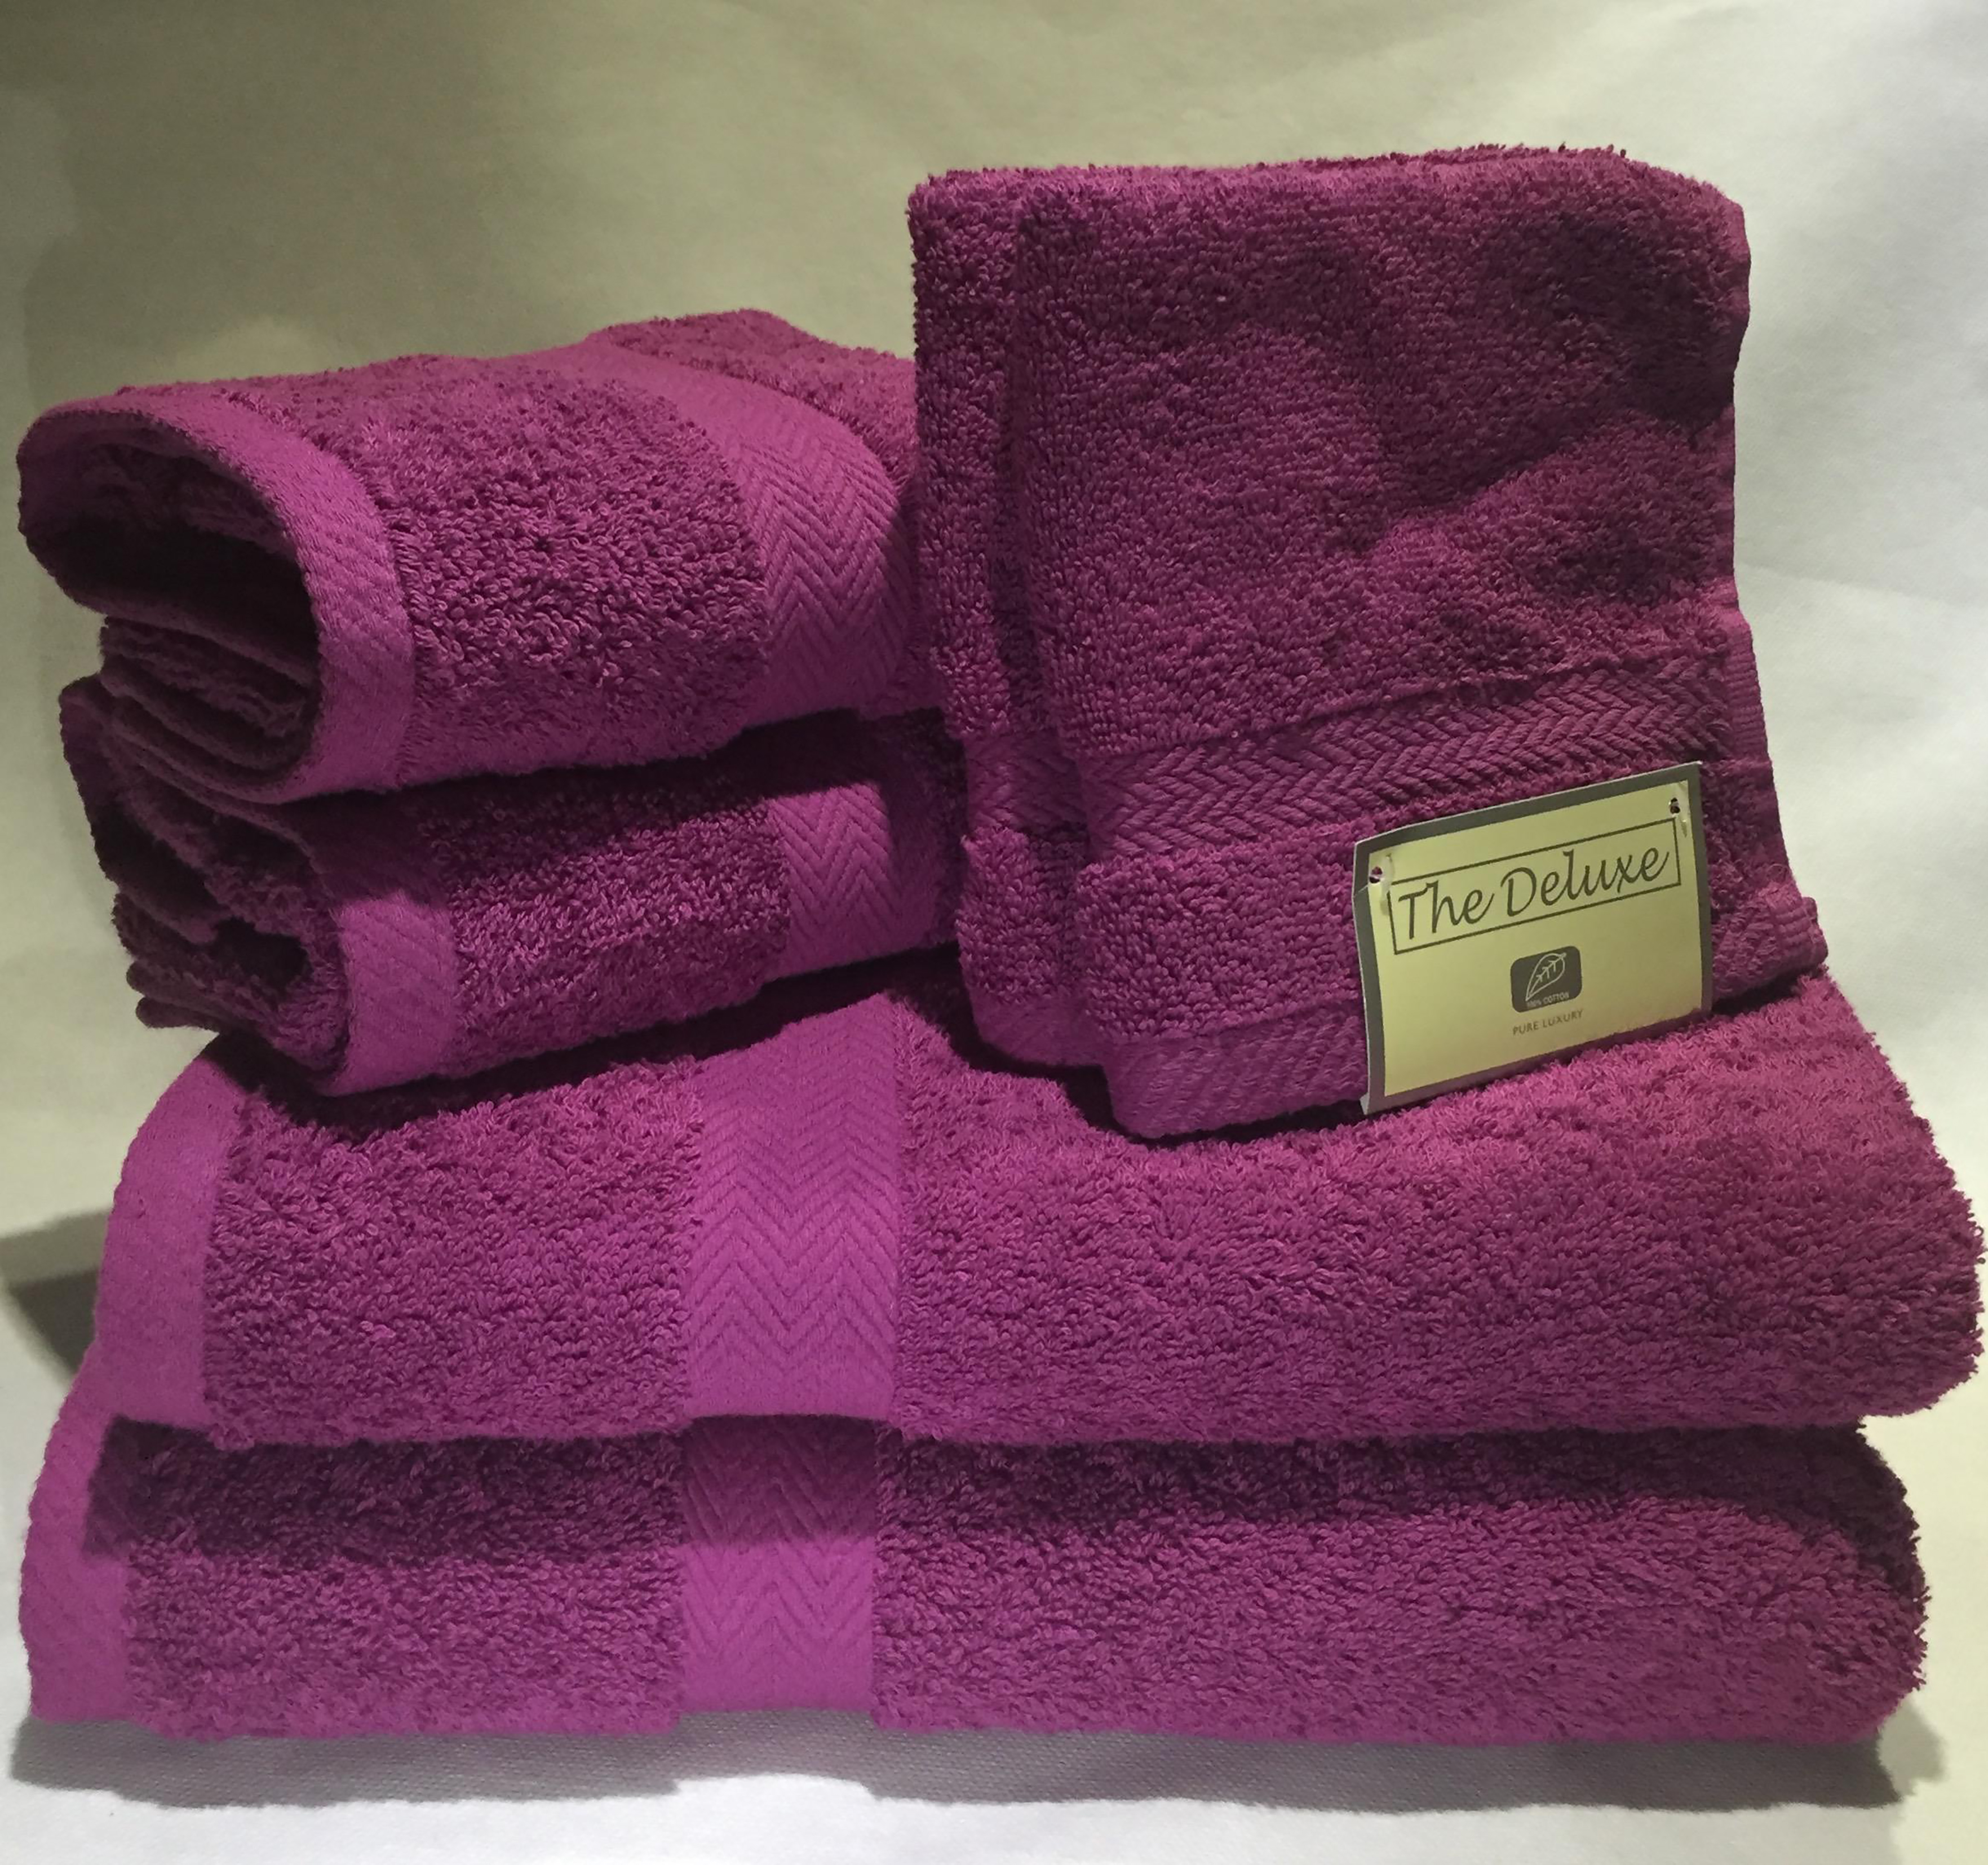 Deluxe Basics 6-Piece Solid Luxury Towel Set by Lintex